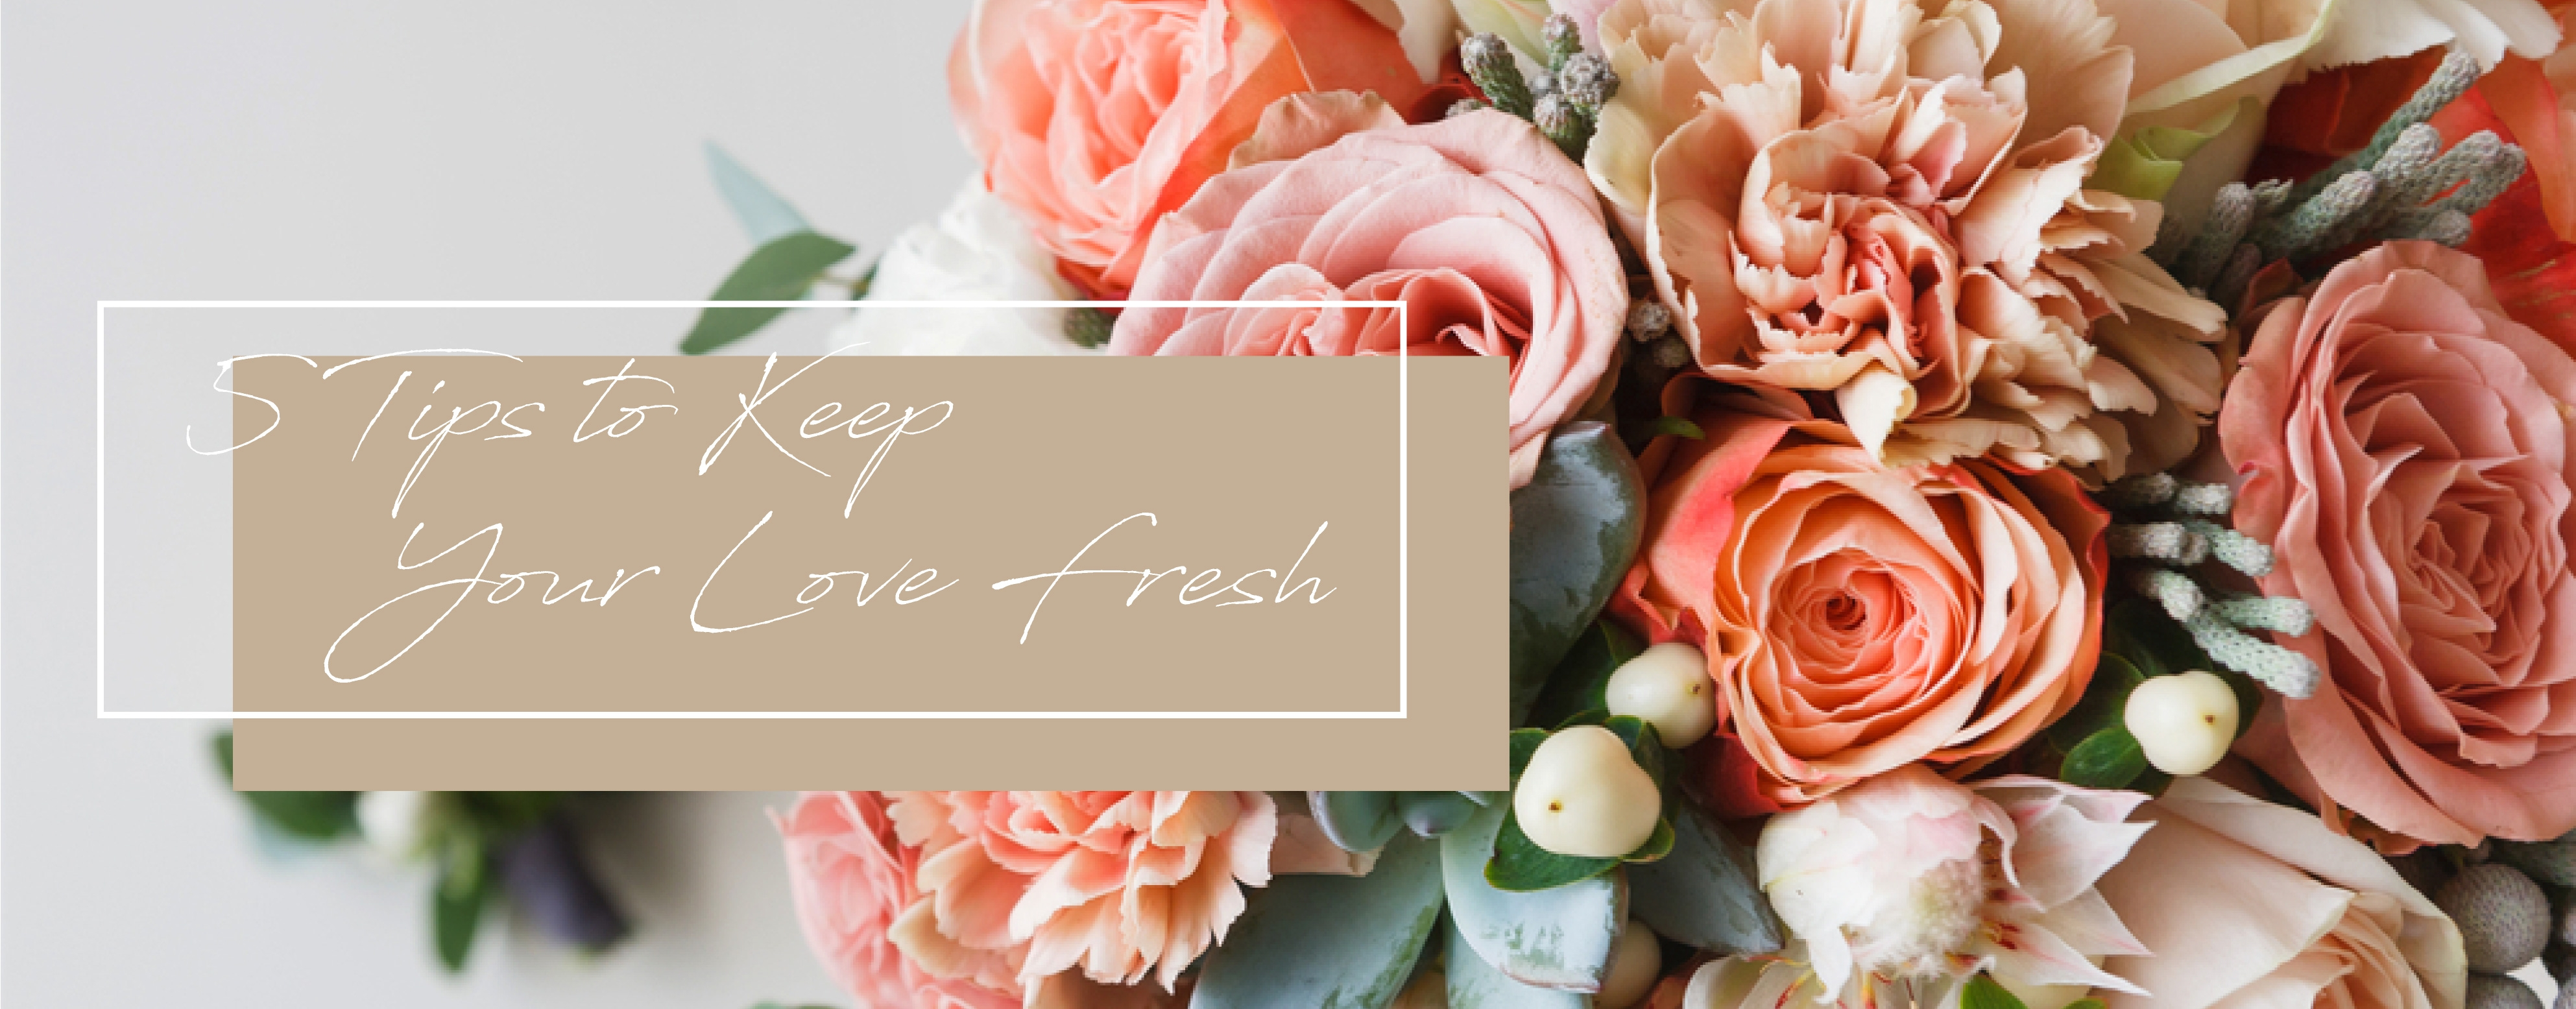 H5 Tips To Keep Your Love Fresh